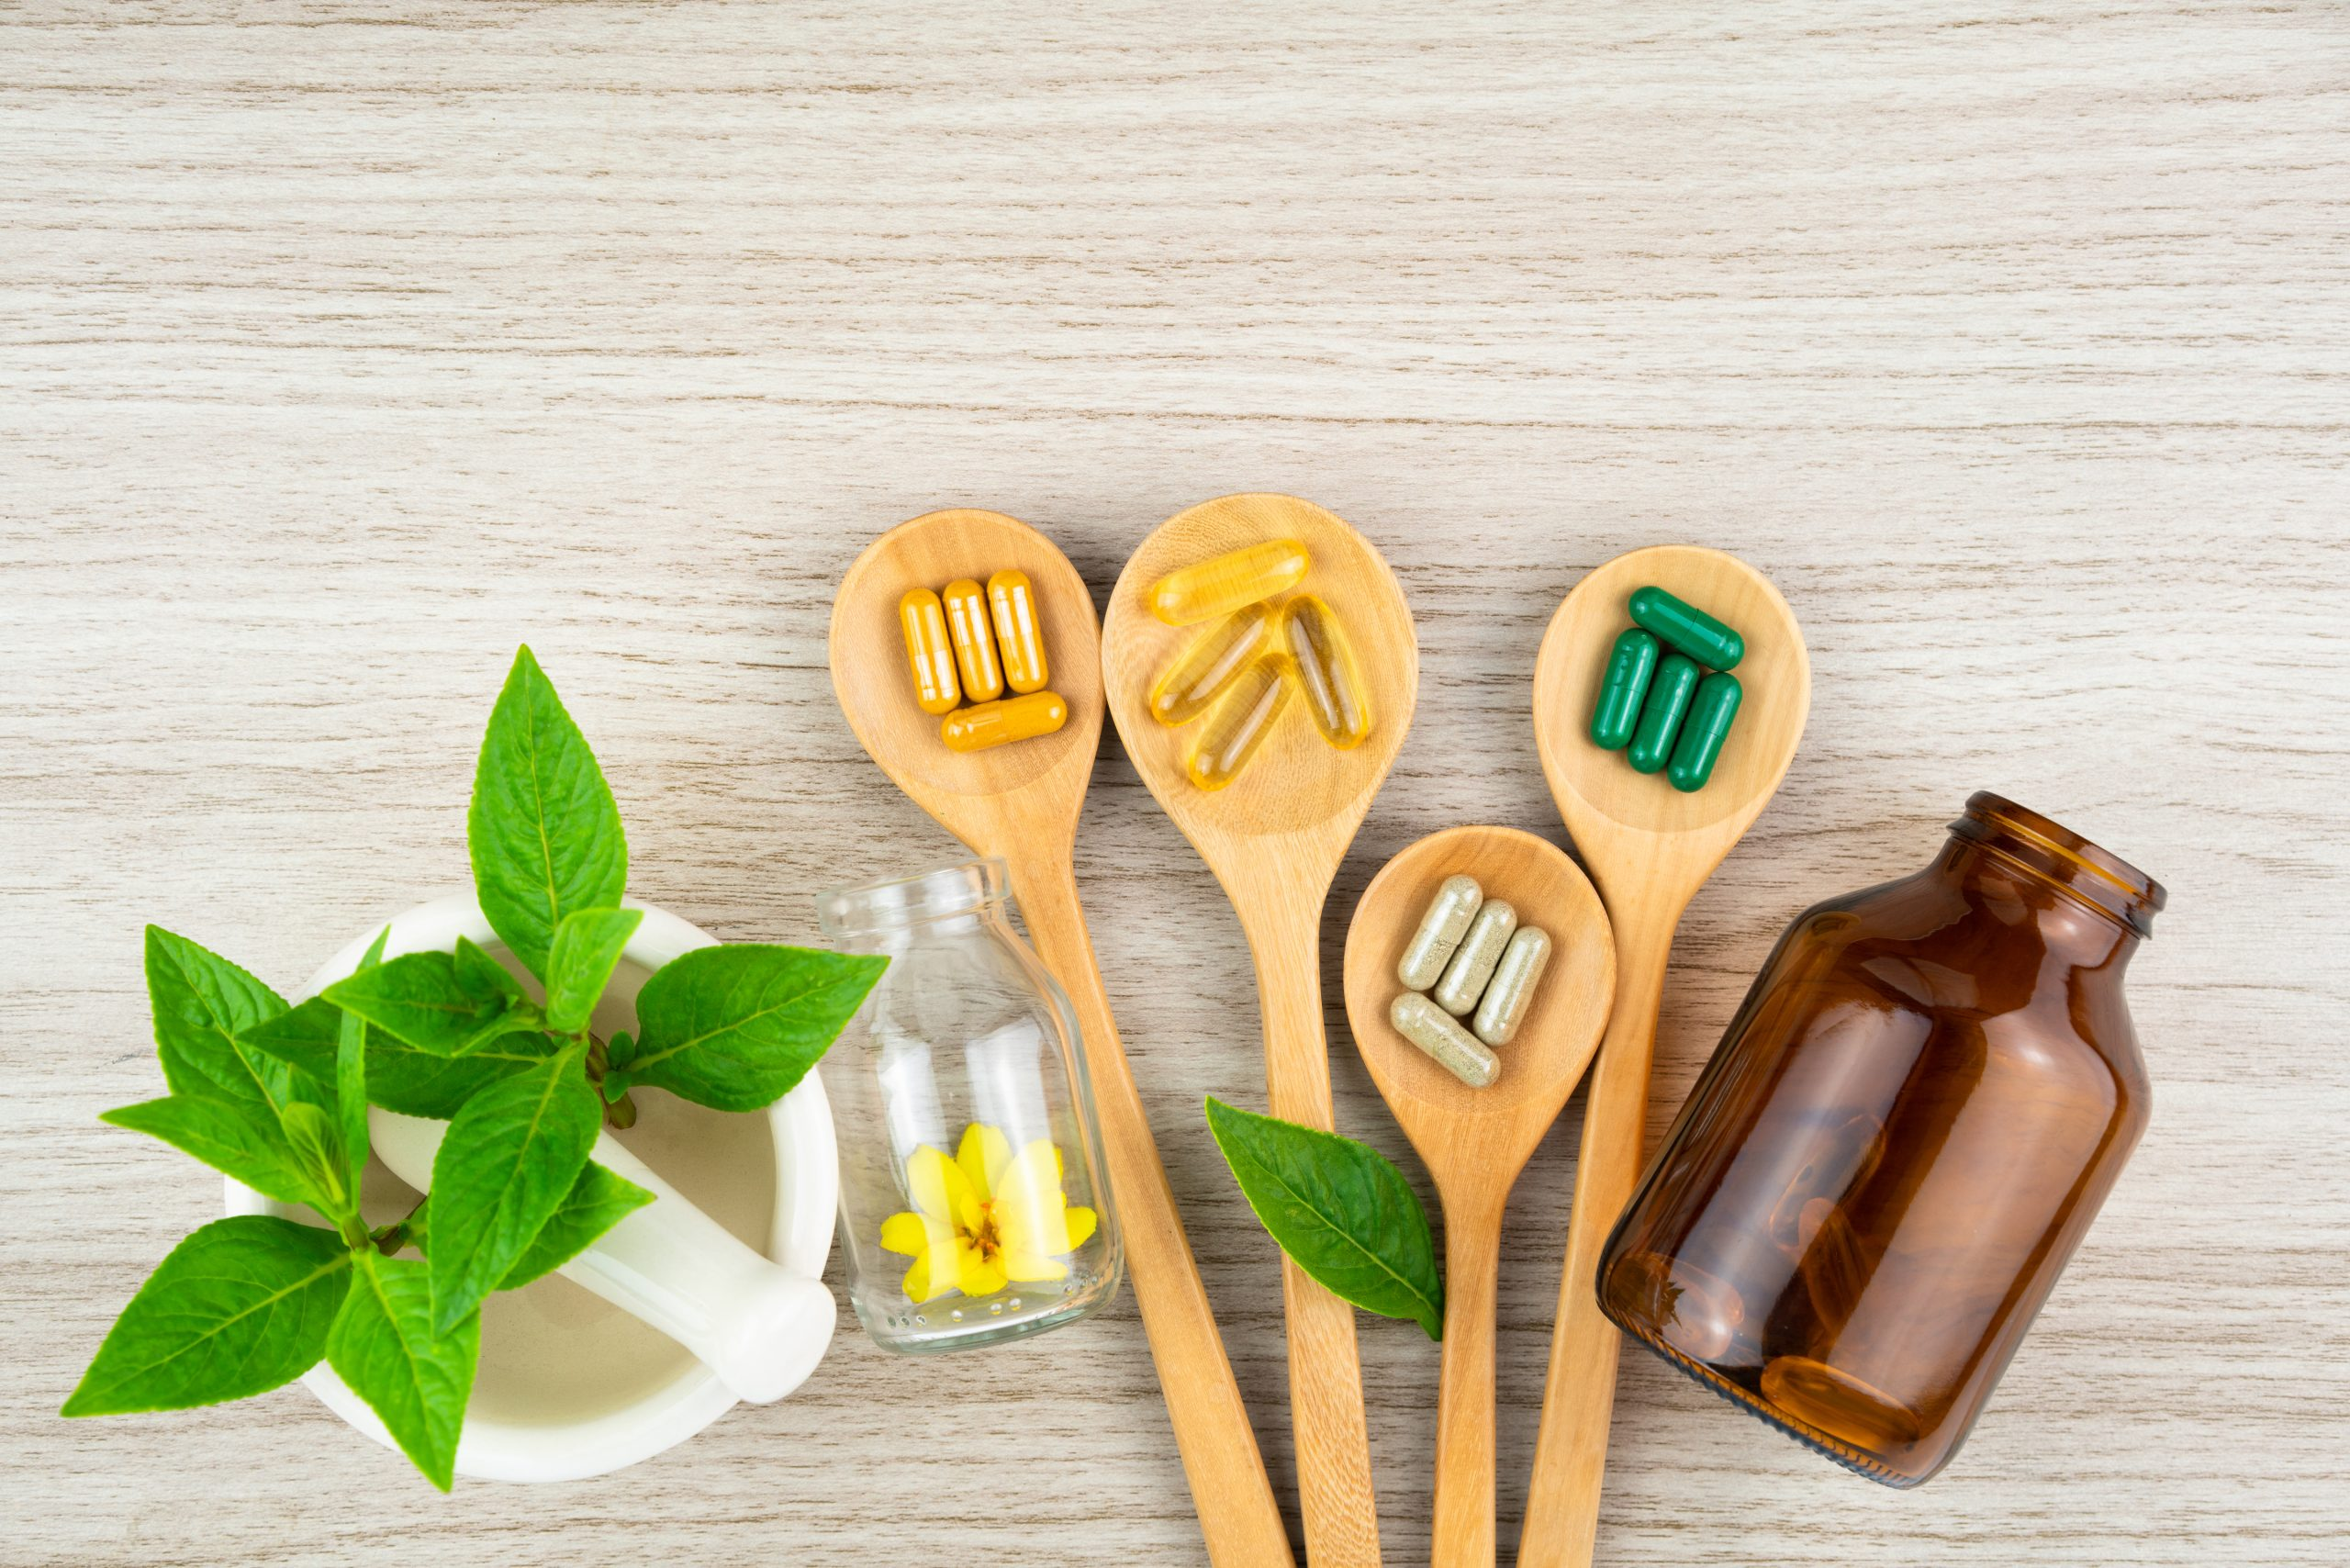 Wooden spoon holding dietary supplements